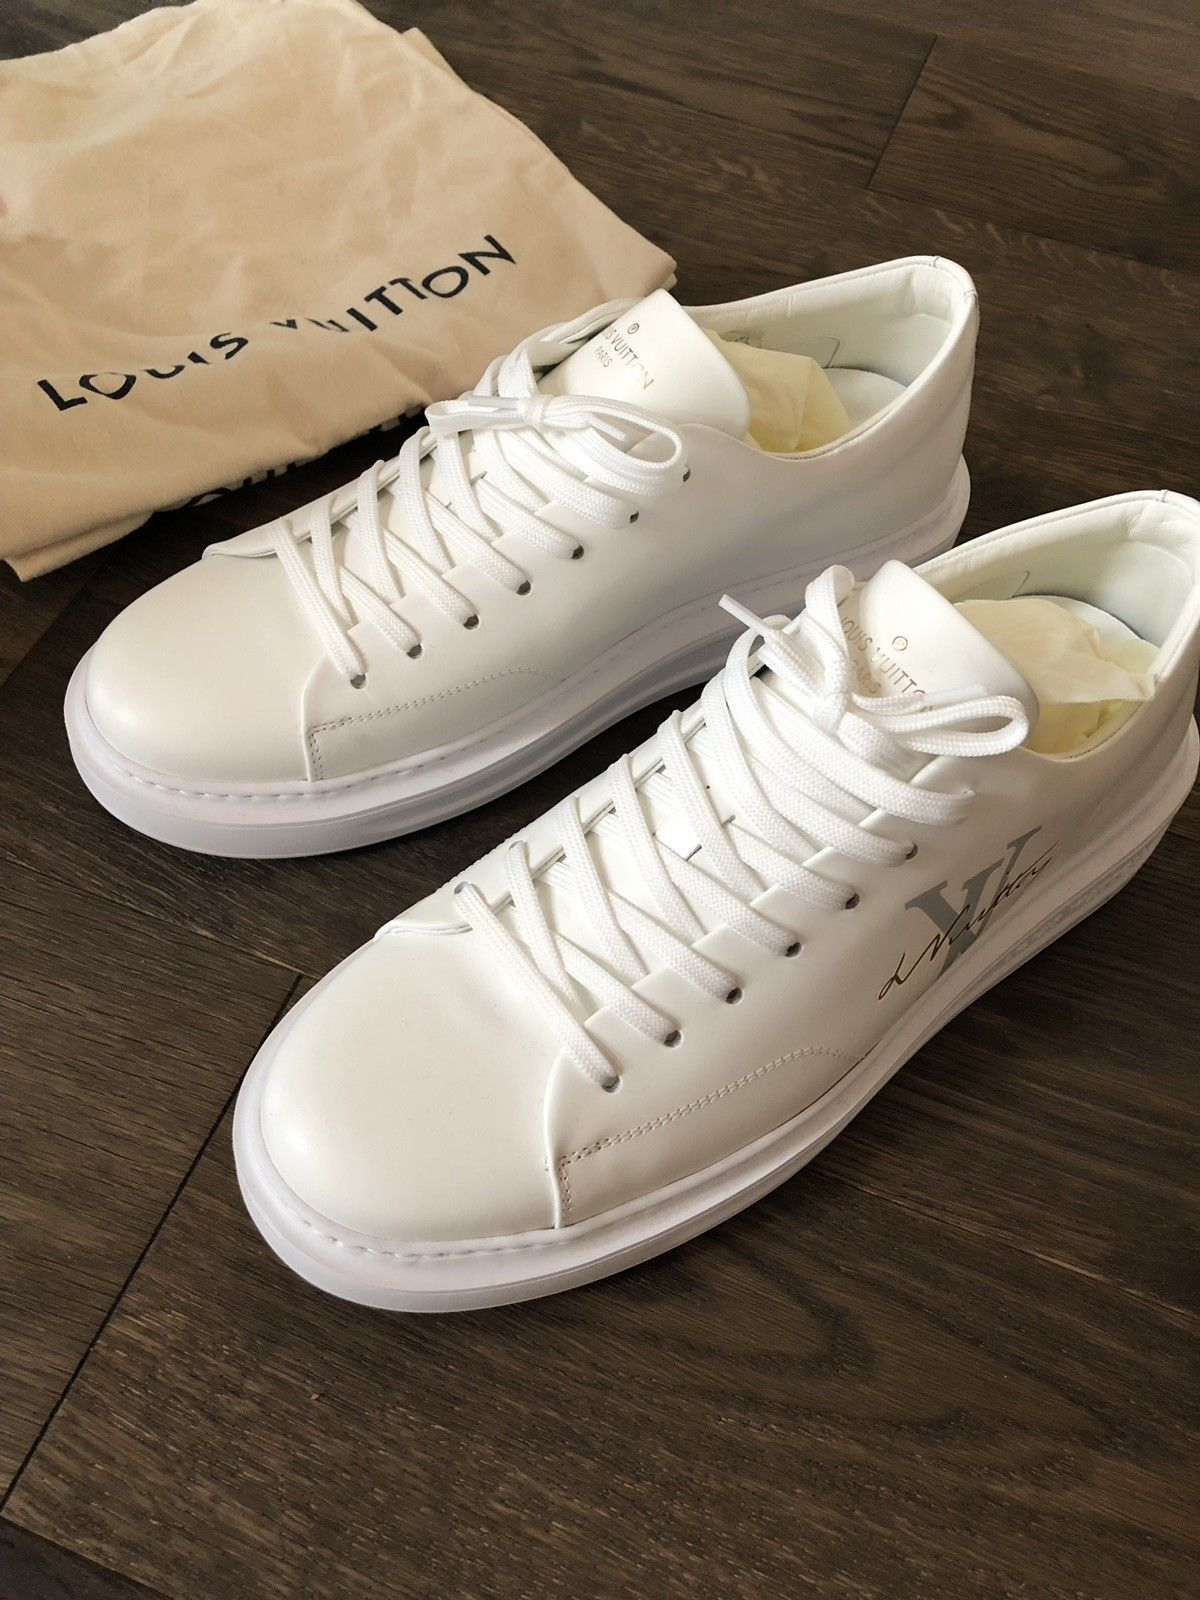 94f02911e2a Louis Vuitton Beverly Hills sneakers Authentic LV Fits Size US10 (UK ...